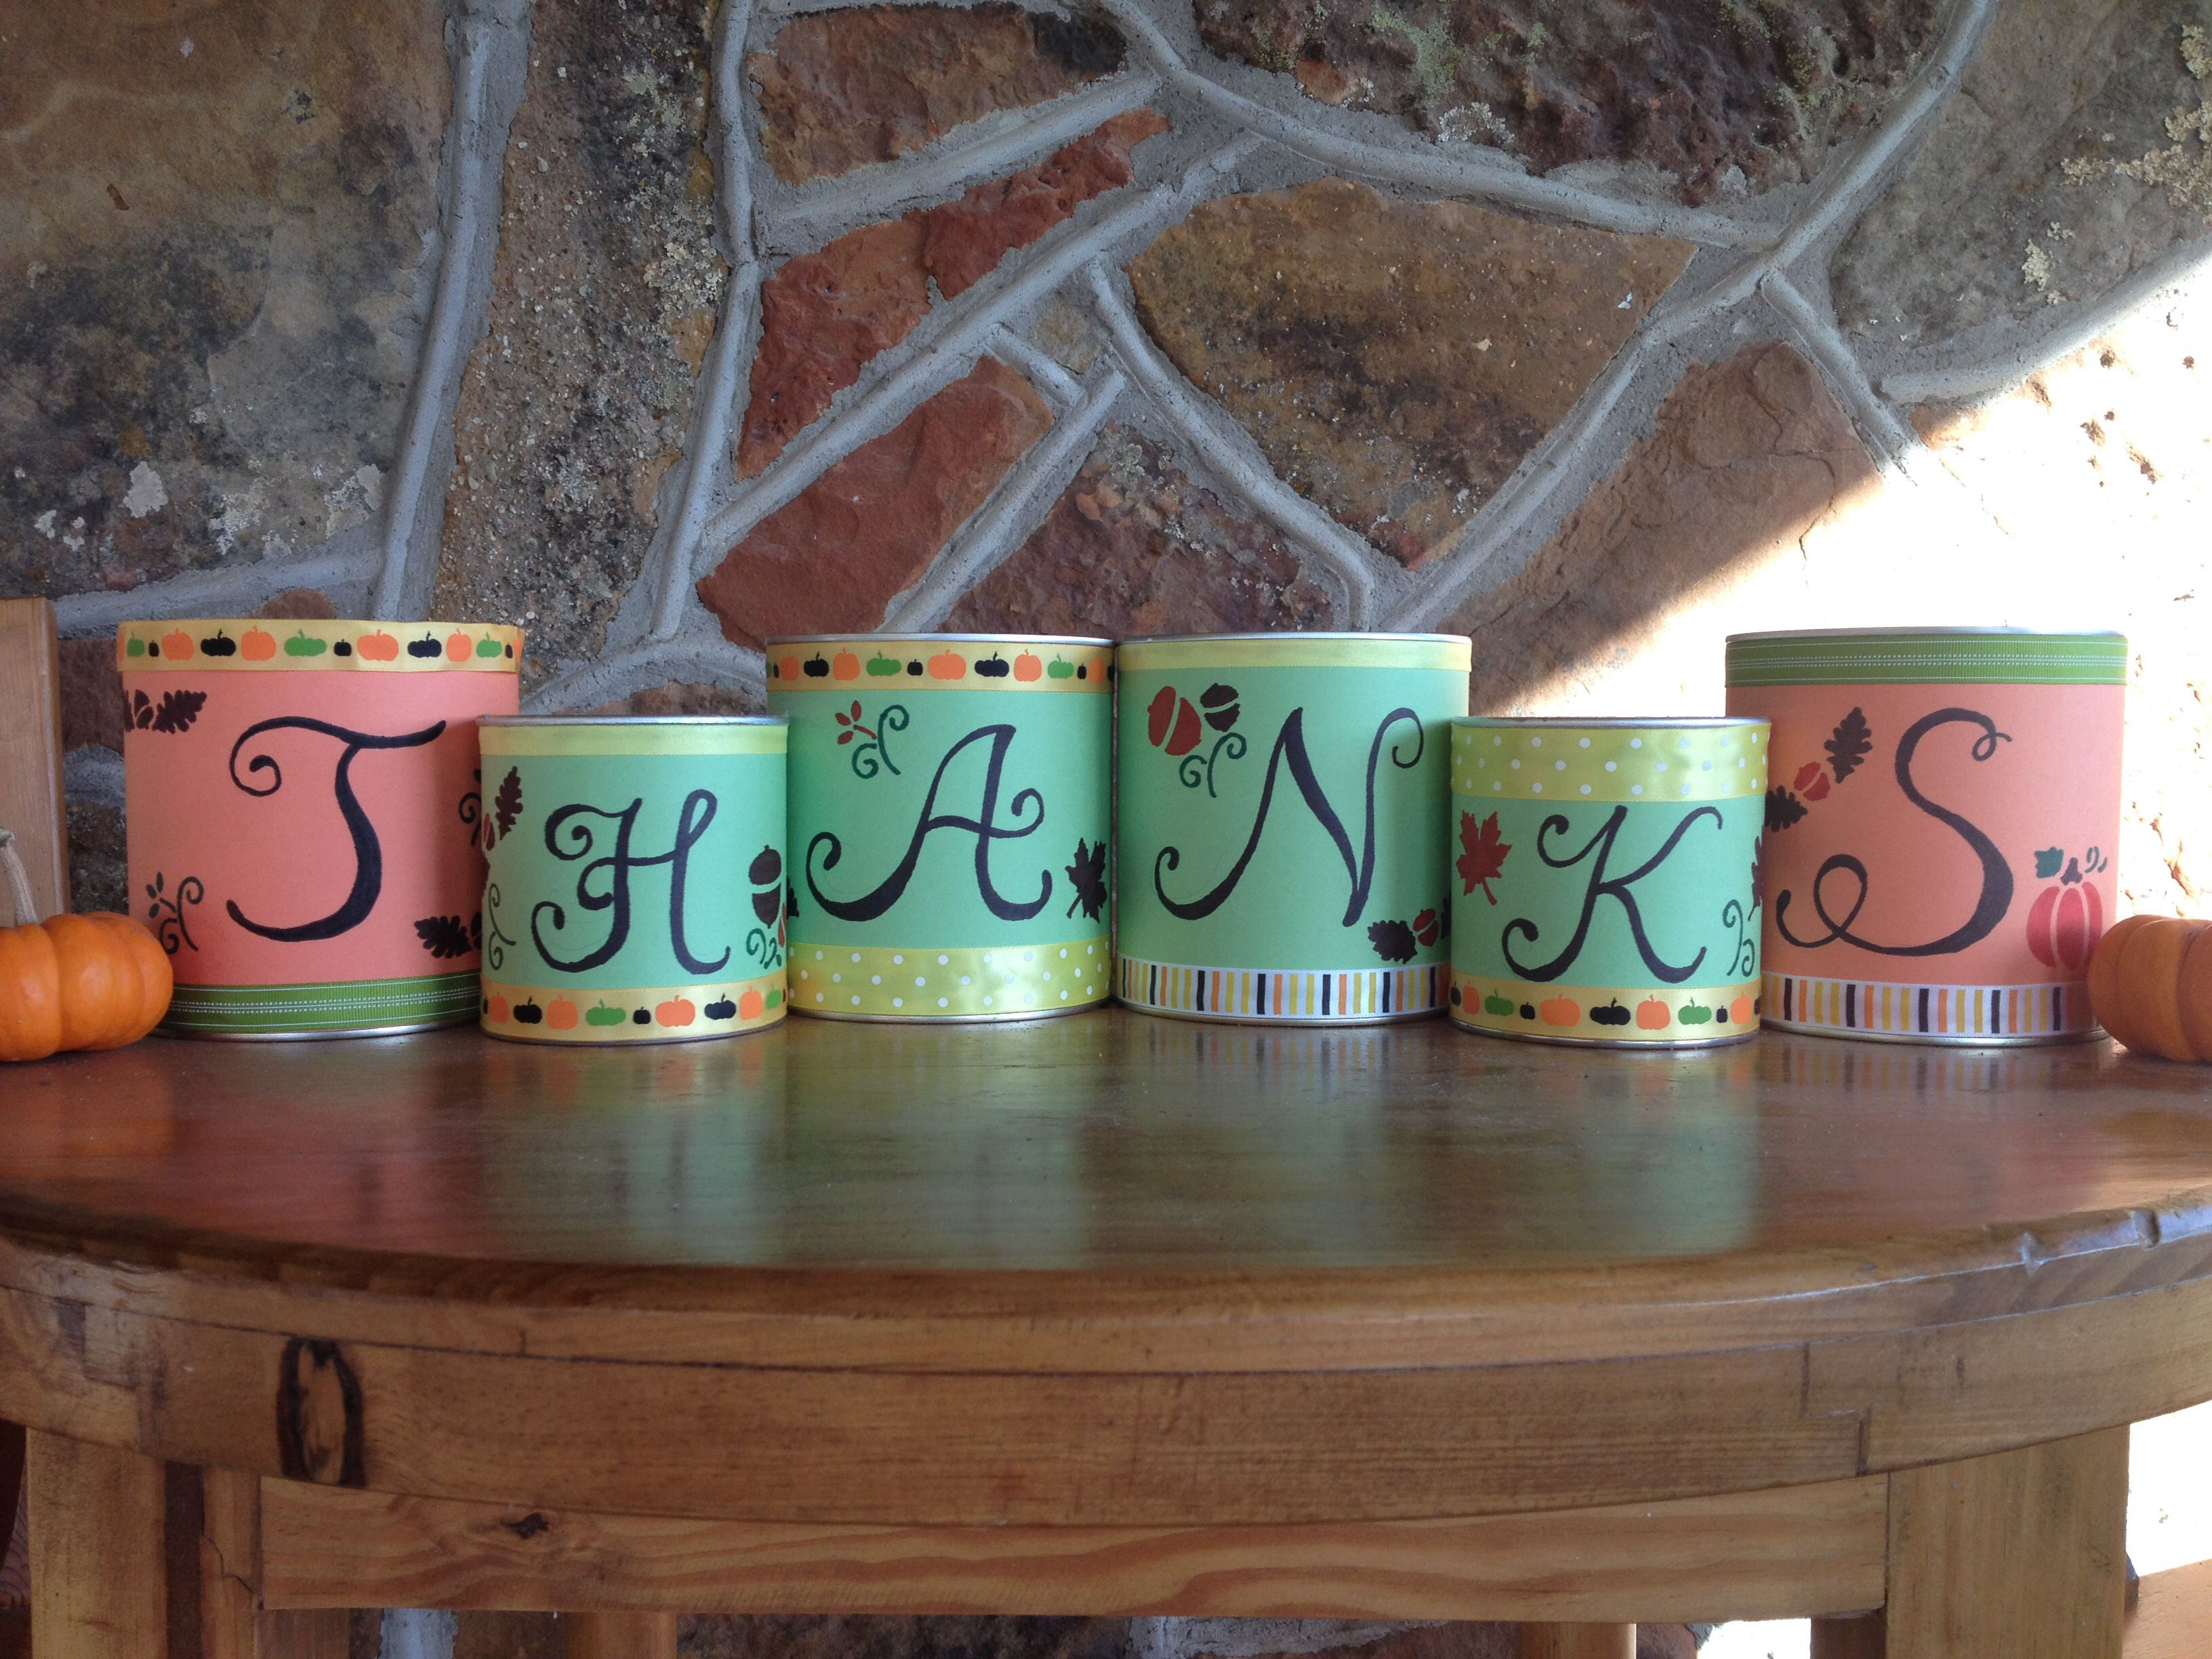 Thanksgiving decor made from empty formula cans and construction